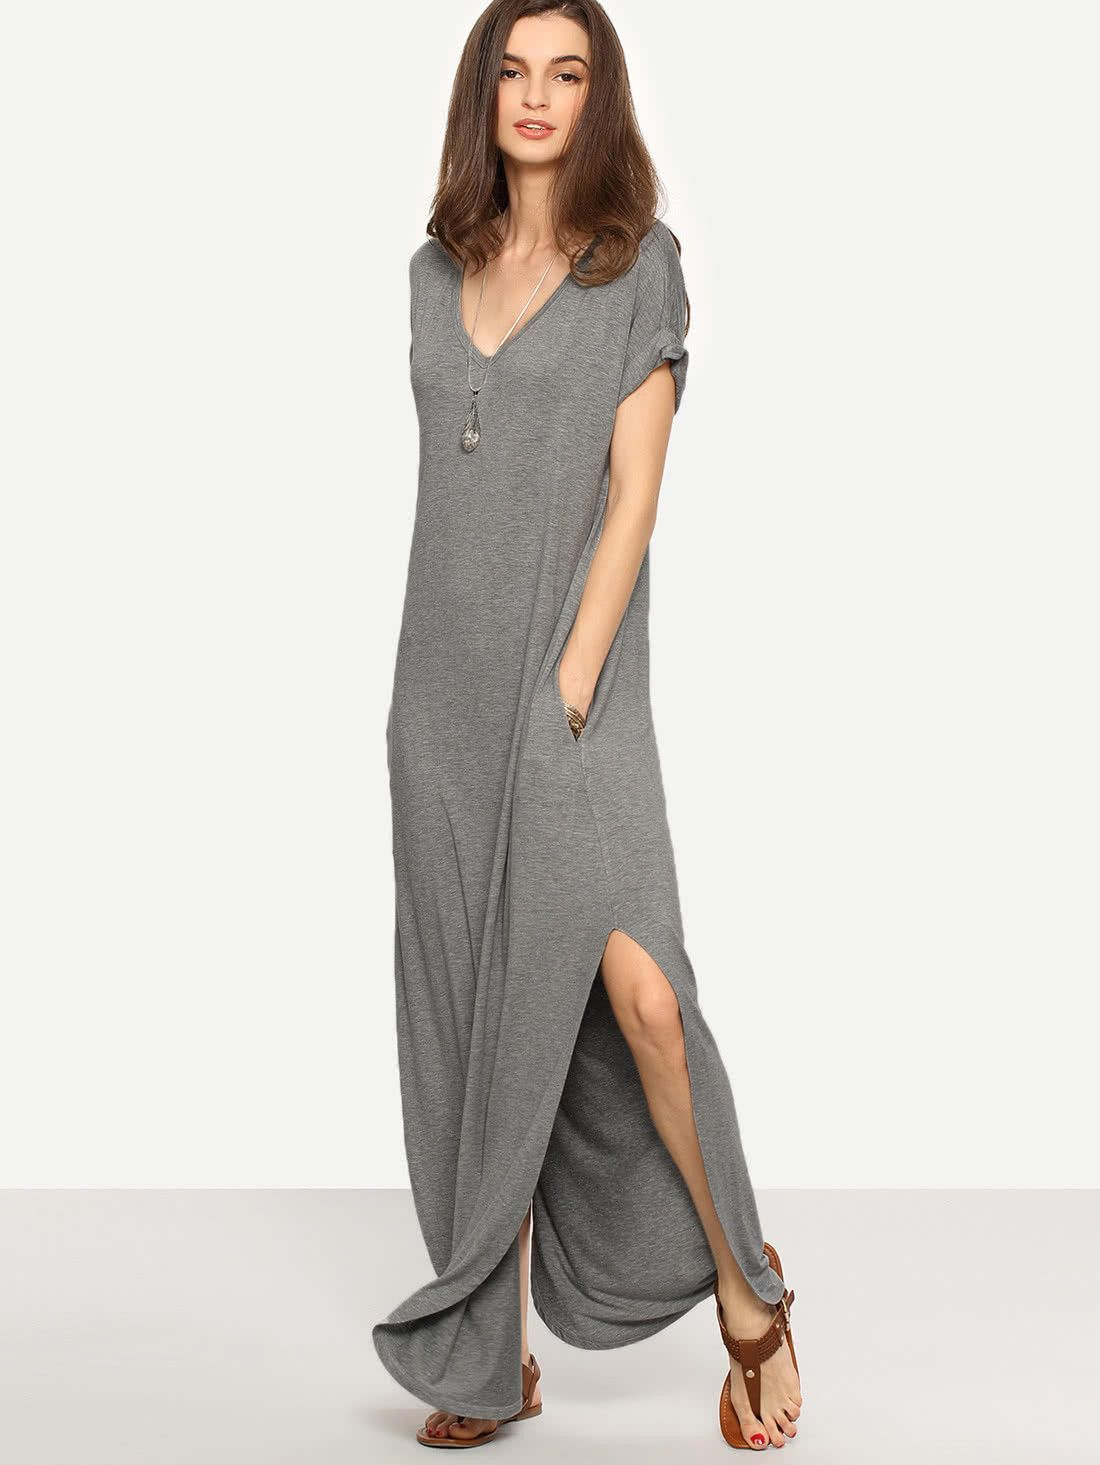 f6179b4f7c ... L:39cm Fabric: Fabric is very stretchy Season: Summer Pattern Type:  Plain Sleeve Length: Short Sleeve Color: Grey Dresses Length: Maxi Style:  Casual, ...